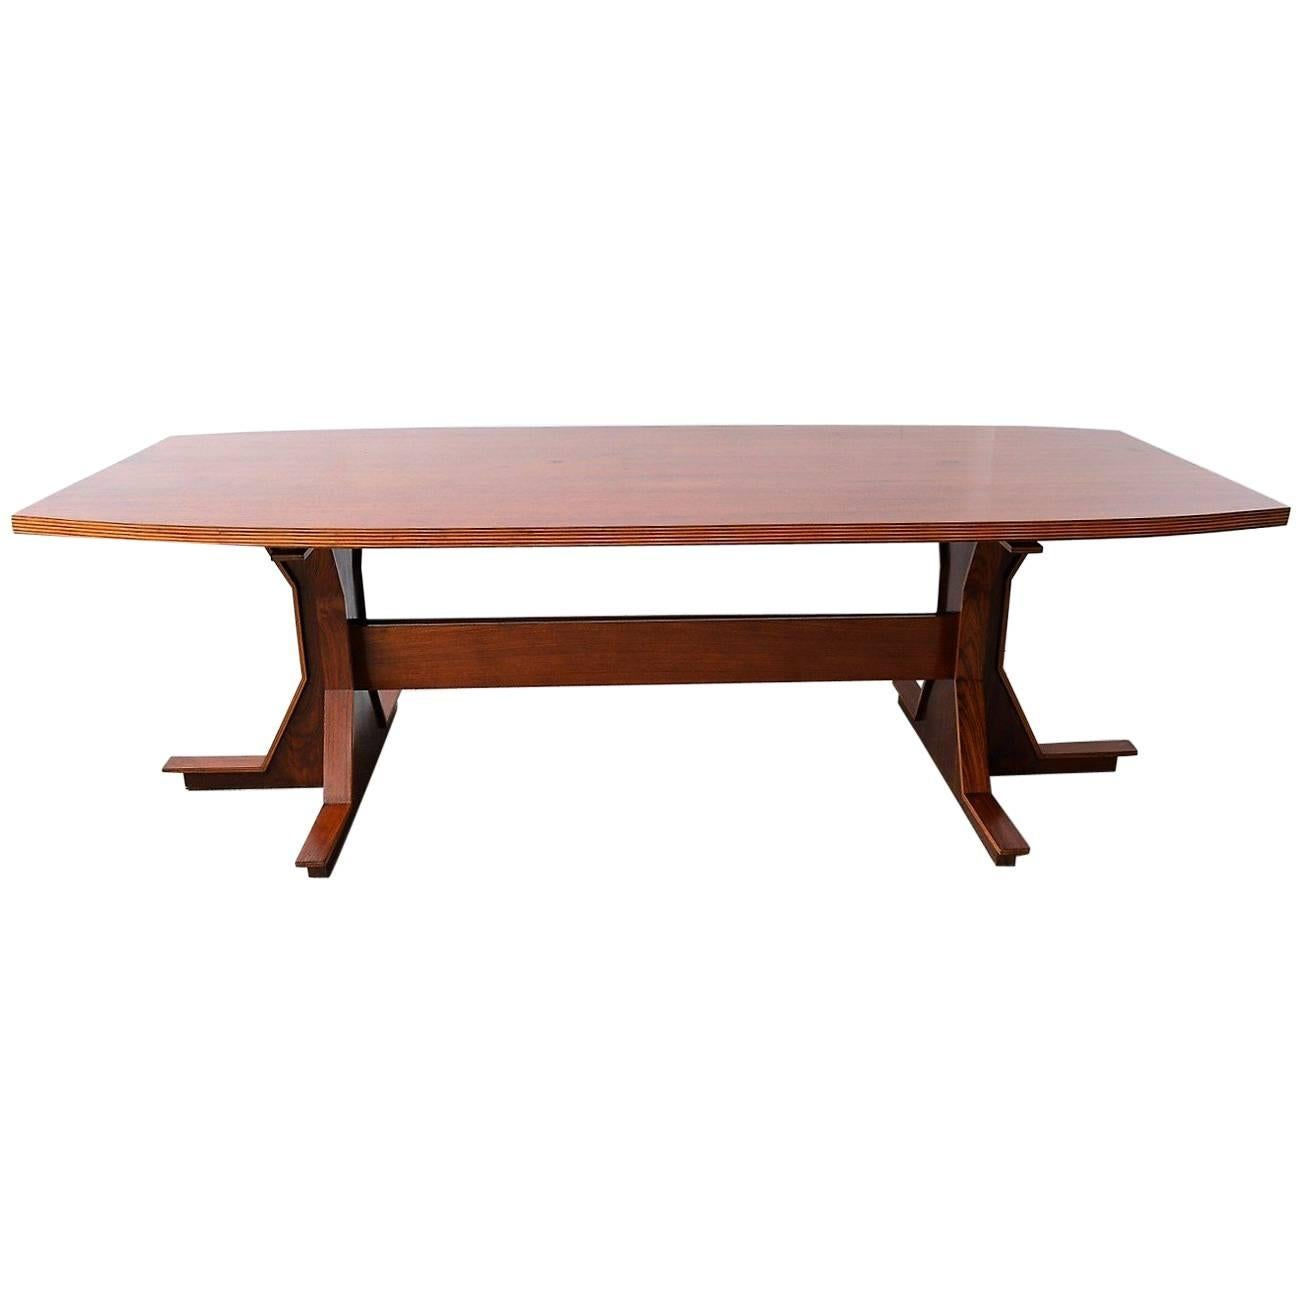 Midcentury Italian Rosewood Dining Or Conference Table, 1950s